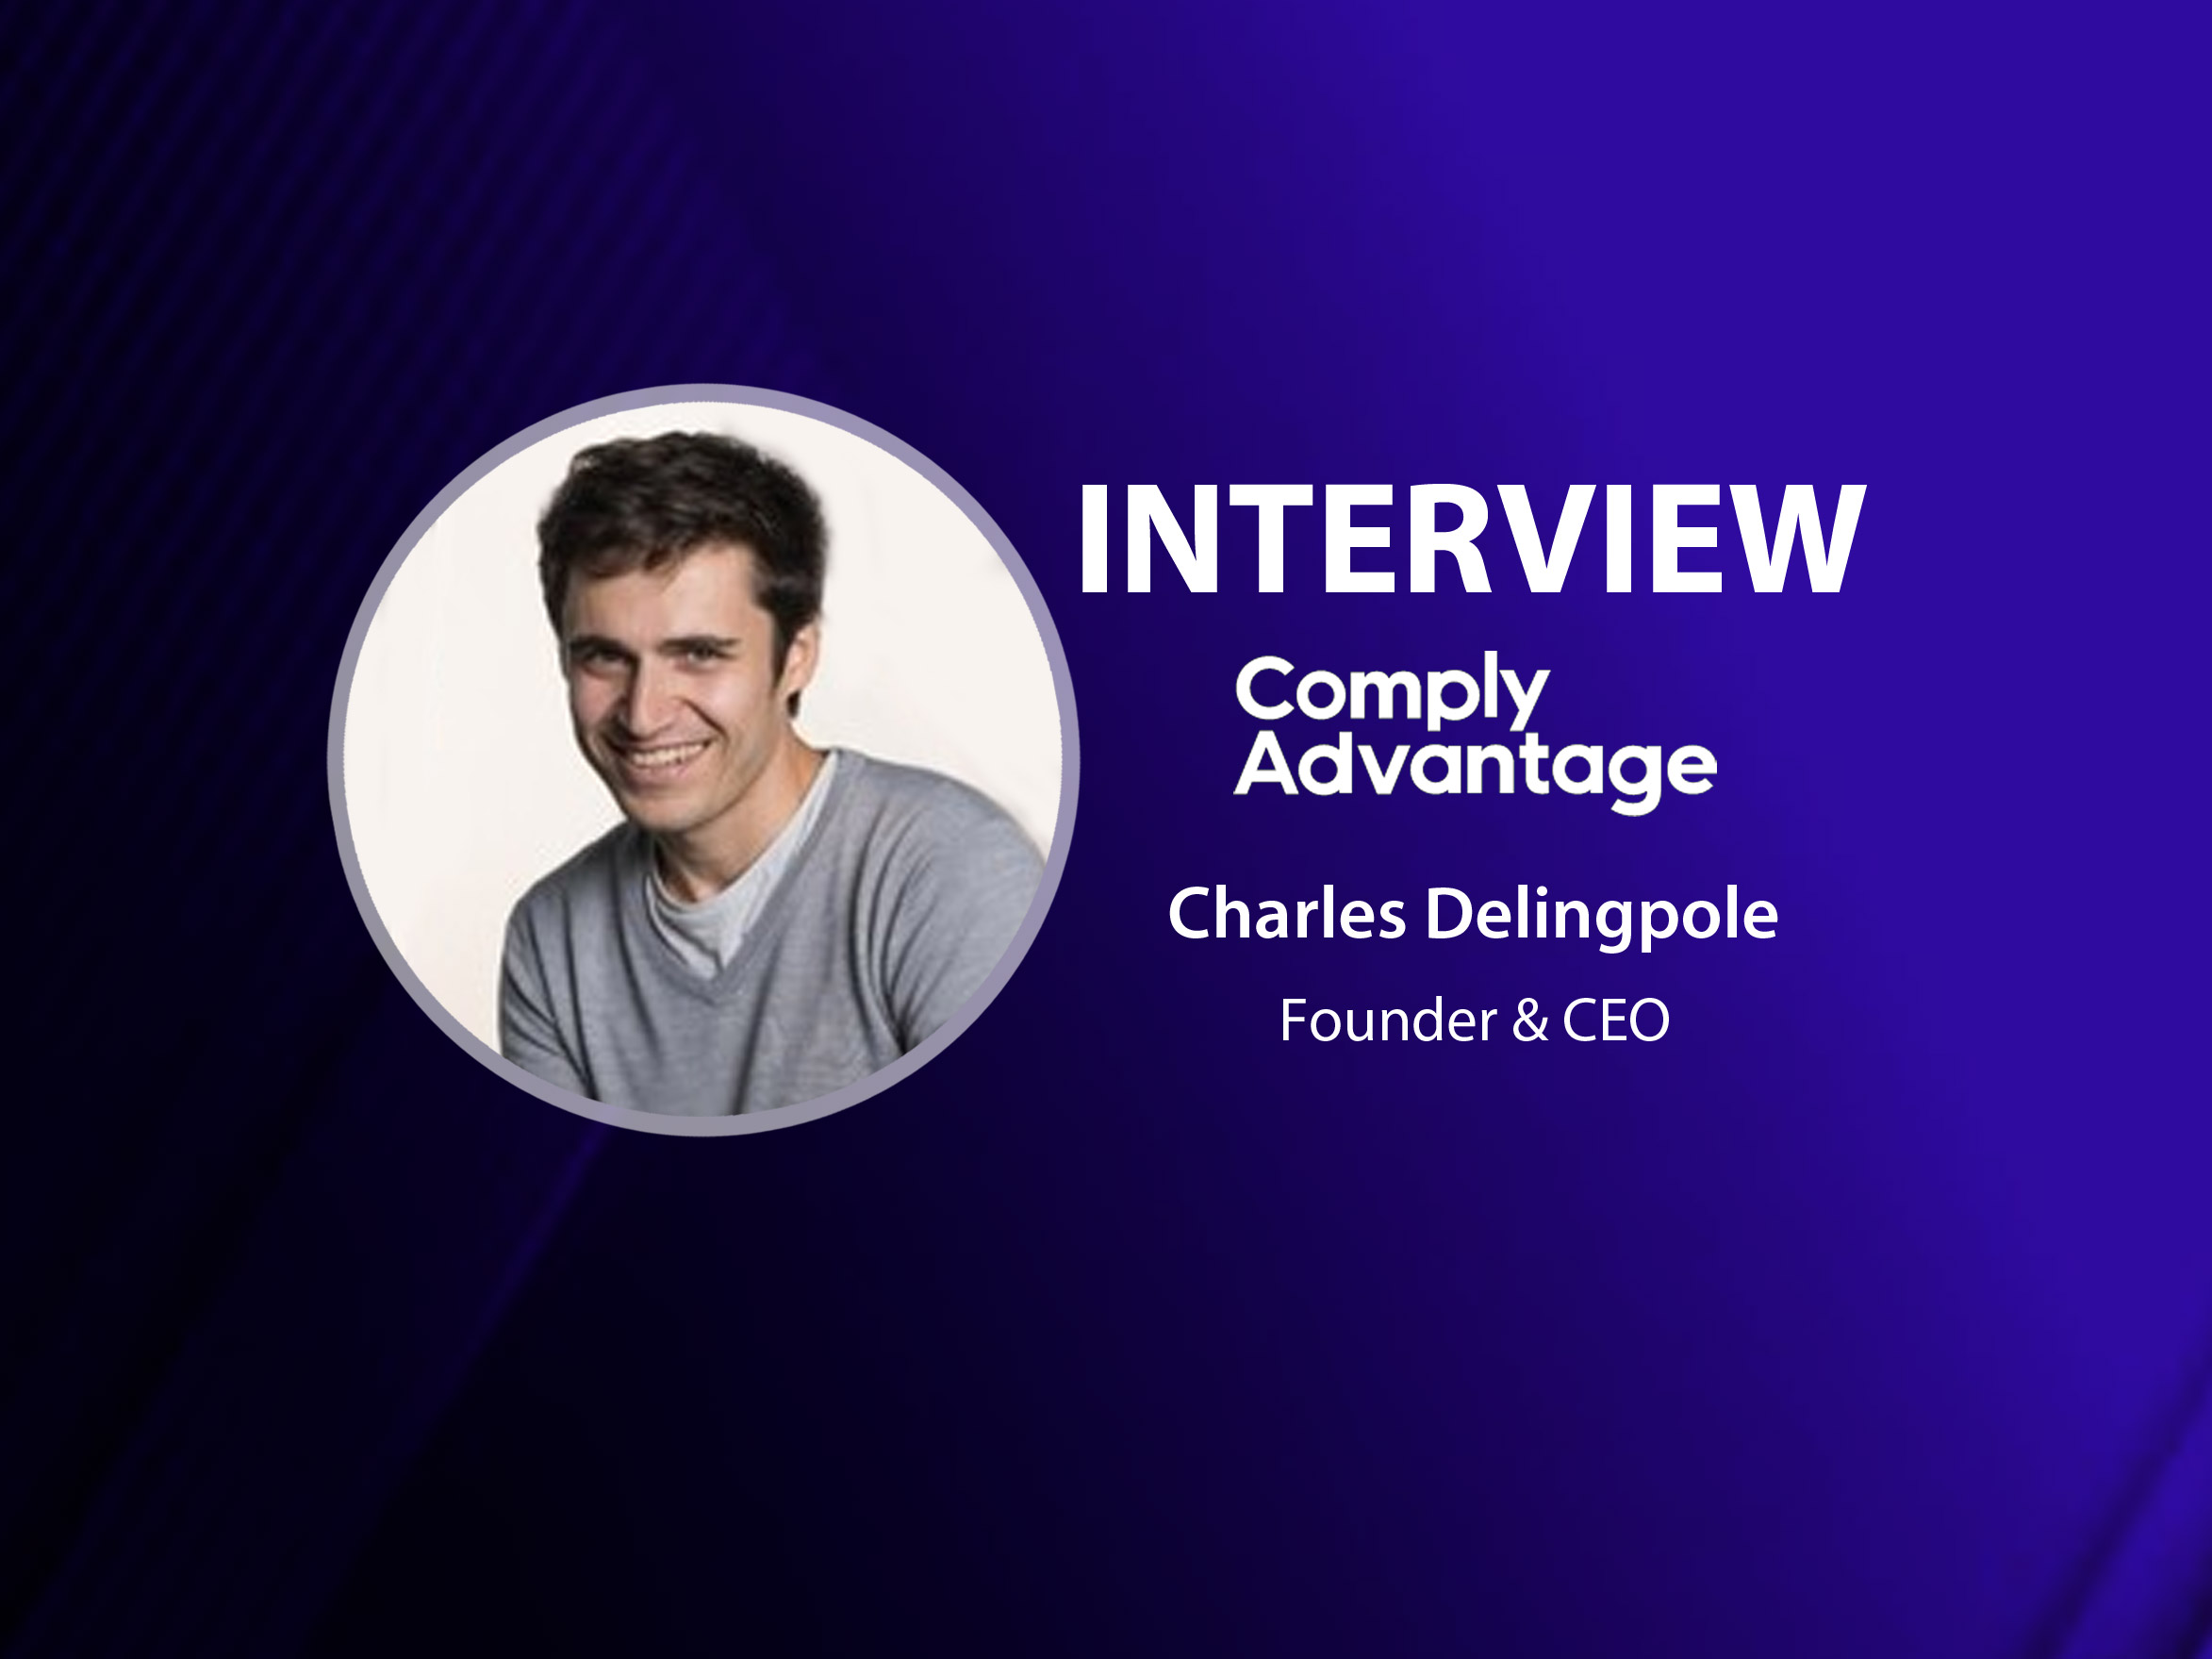 GlobalFintechSeries Interview with Charles Delingpole, Founder and CEO at ComplyAdvantage